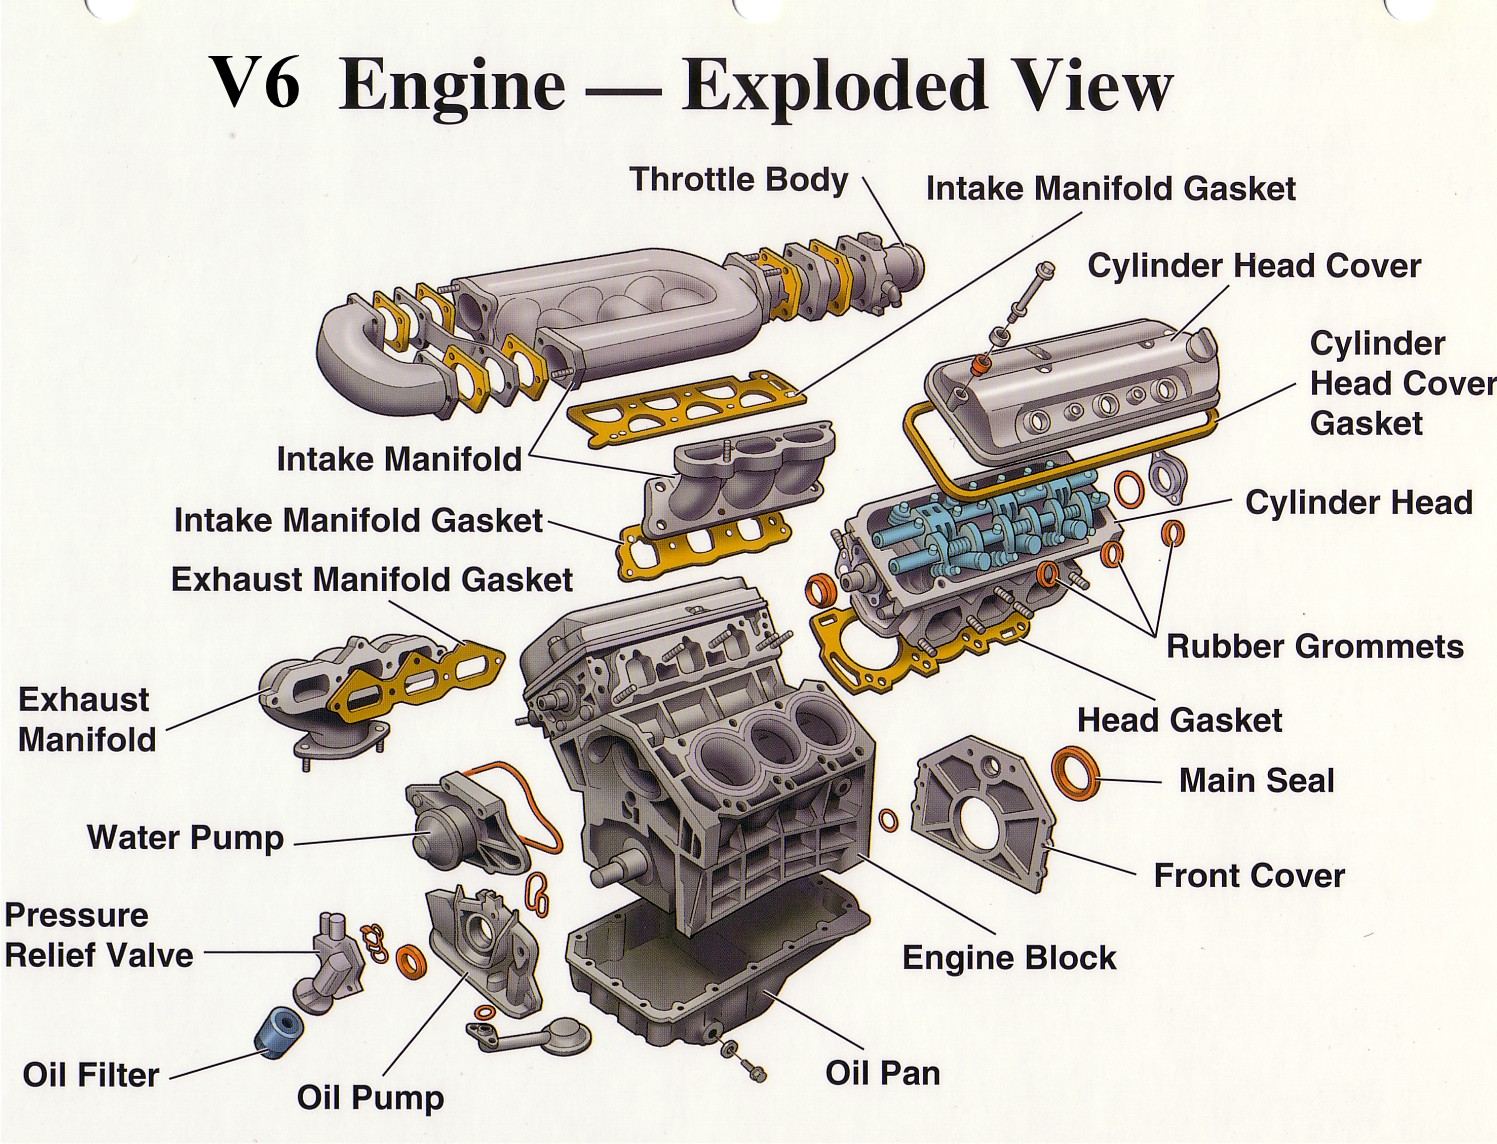 hight resolution of v6 engine exploded view members gallery mechanical 1993 toyota 3 0 v6 engine diagram coolant temp sensor